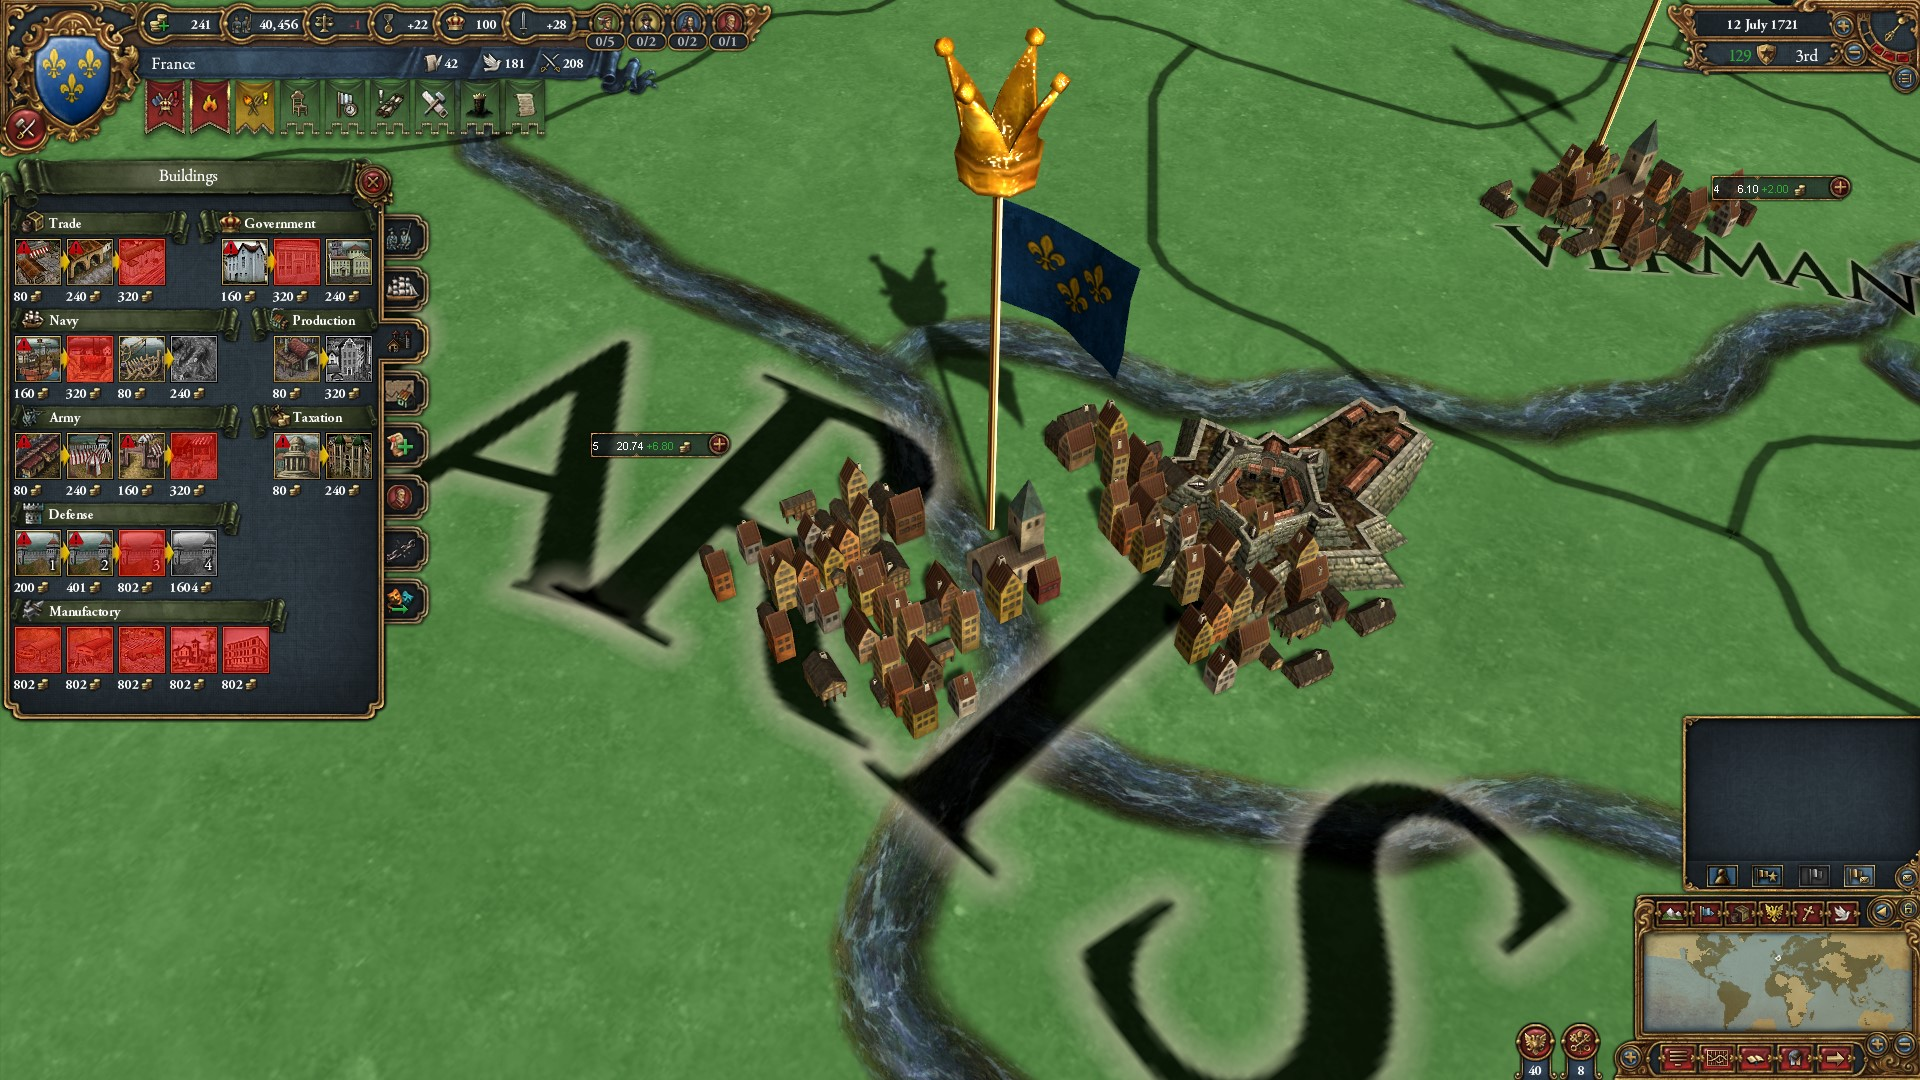 Europa Universalis IV Common Sense (steam key) -- RU